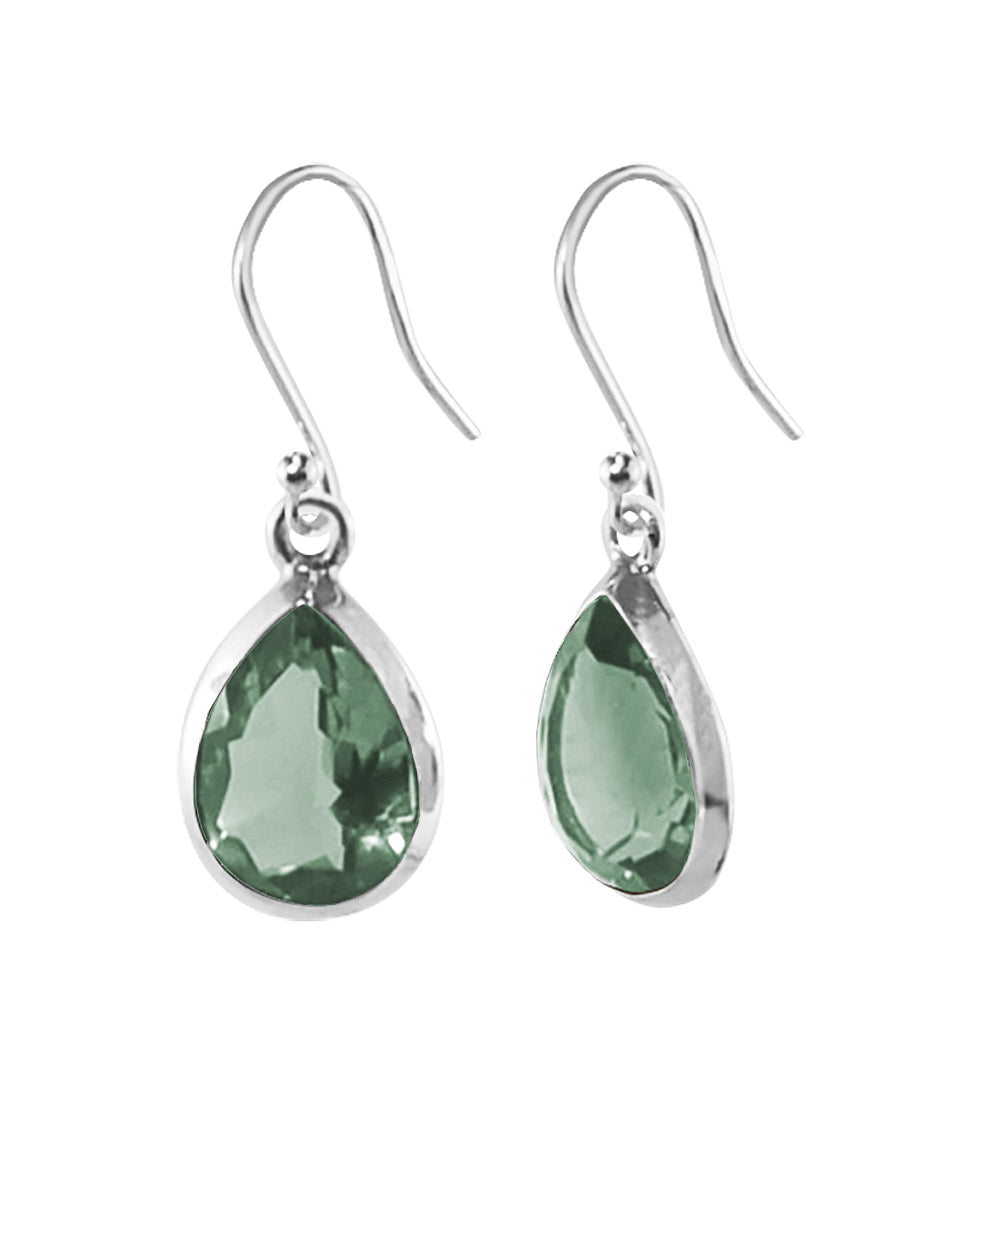 3.00 Ct Pear Cut Natural Green Amethyst Earrings in Sterling Silver